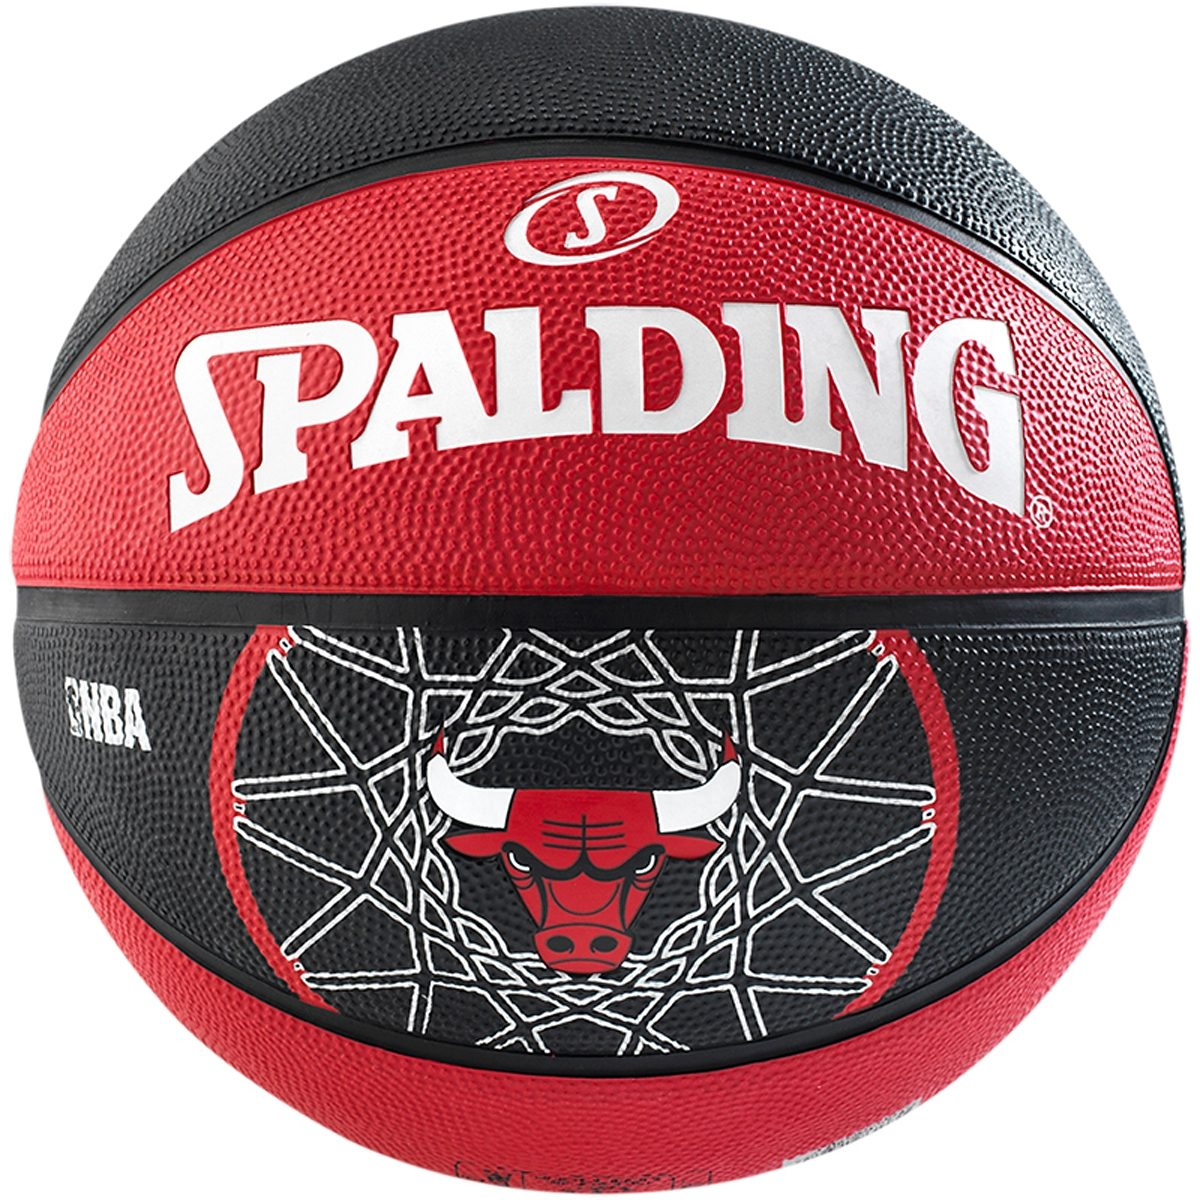 SPALDING Team Chicago Bulls Basketball